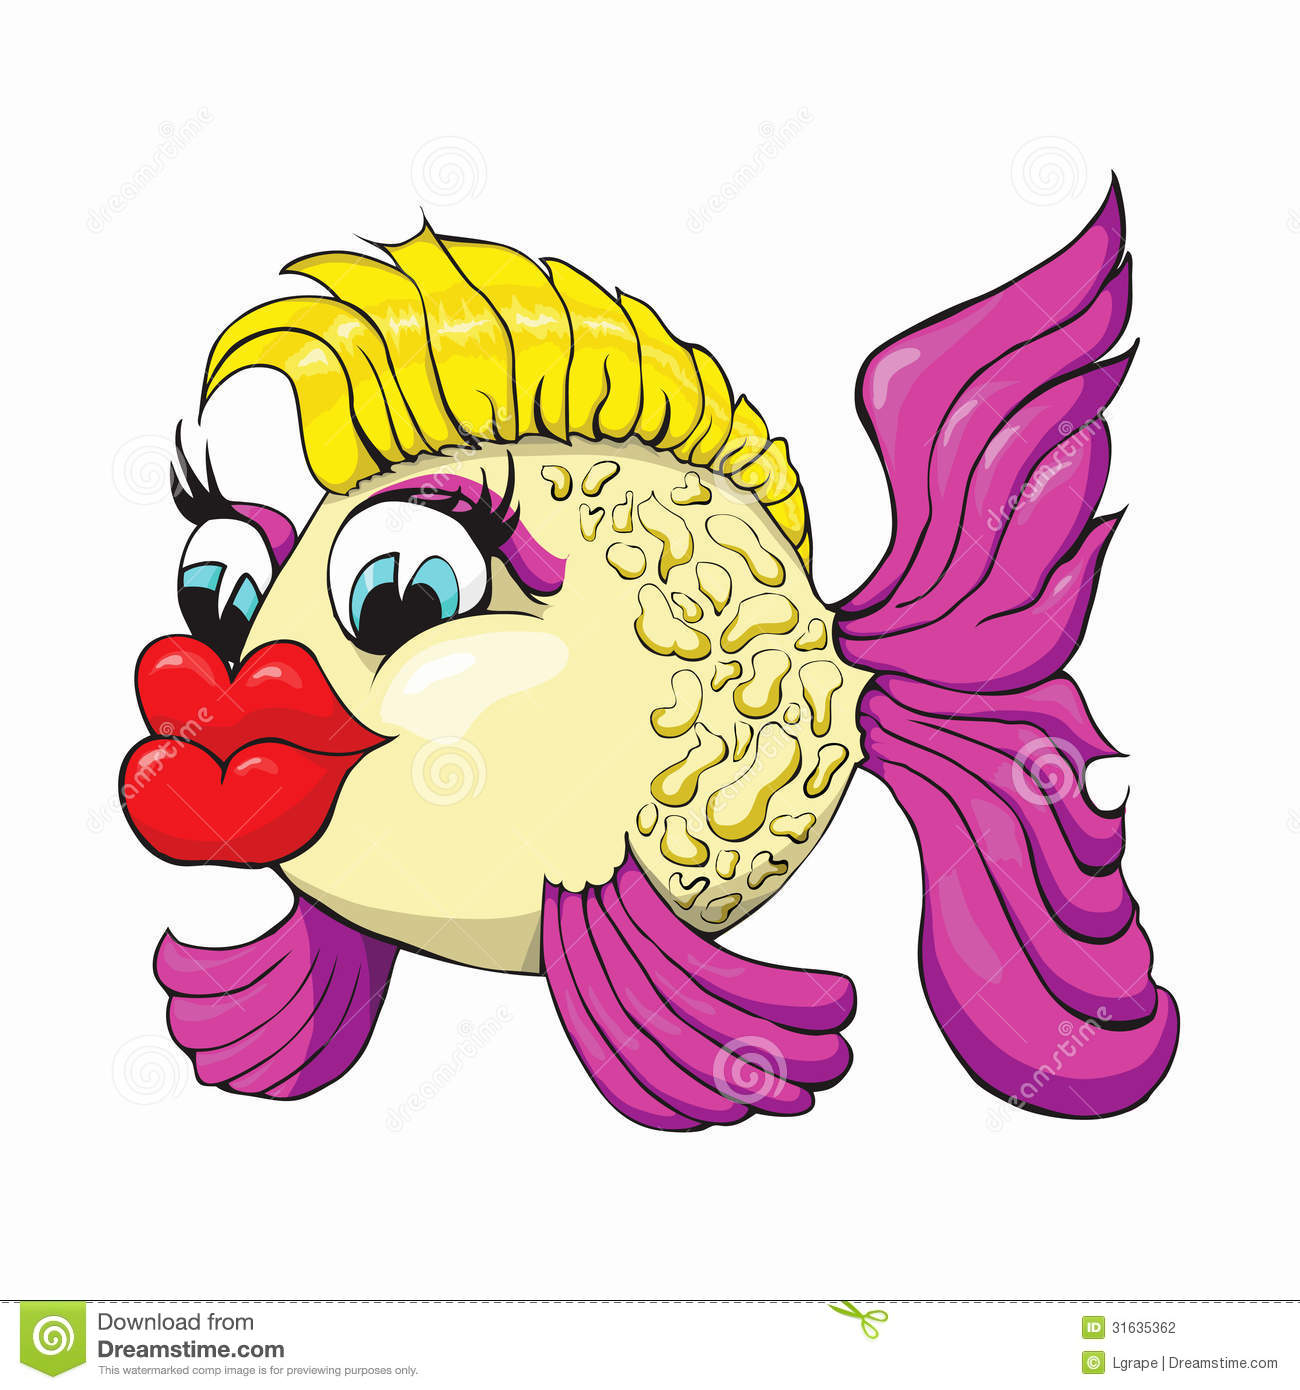 Fish lips clipart.